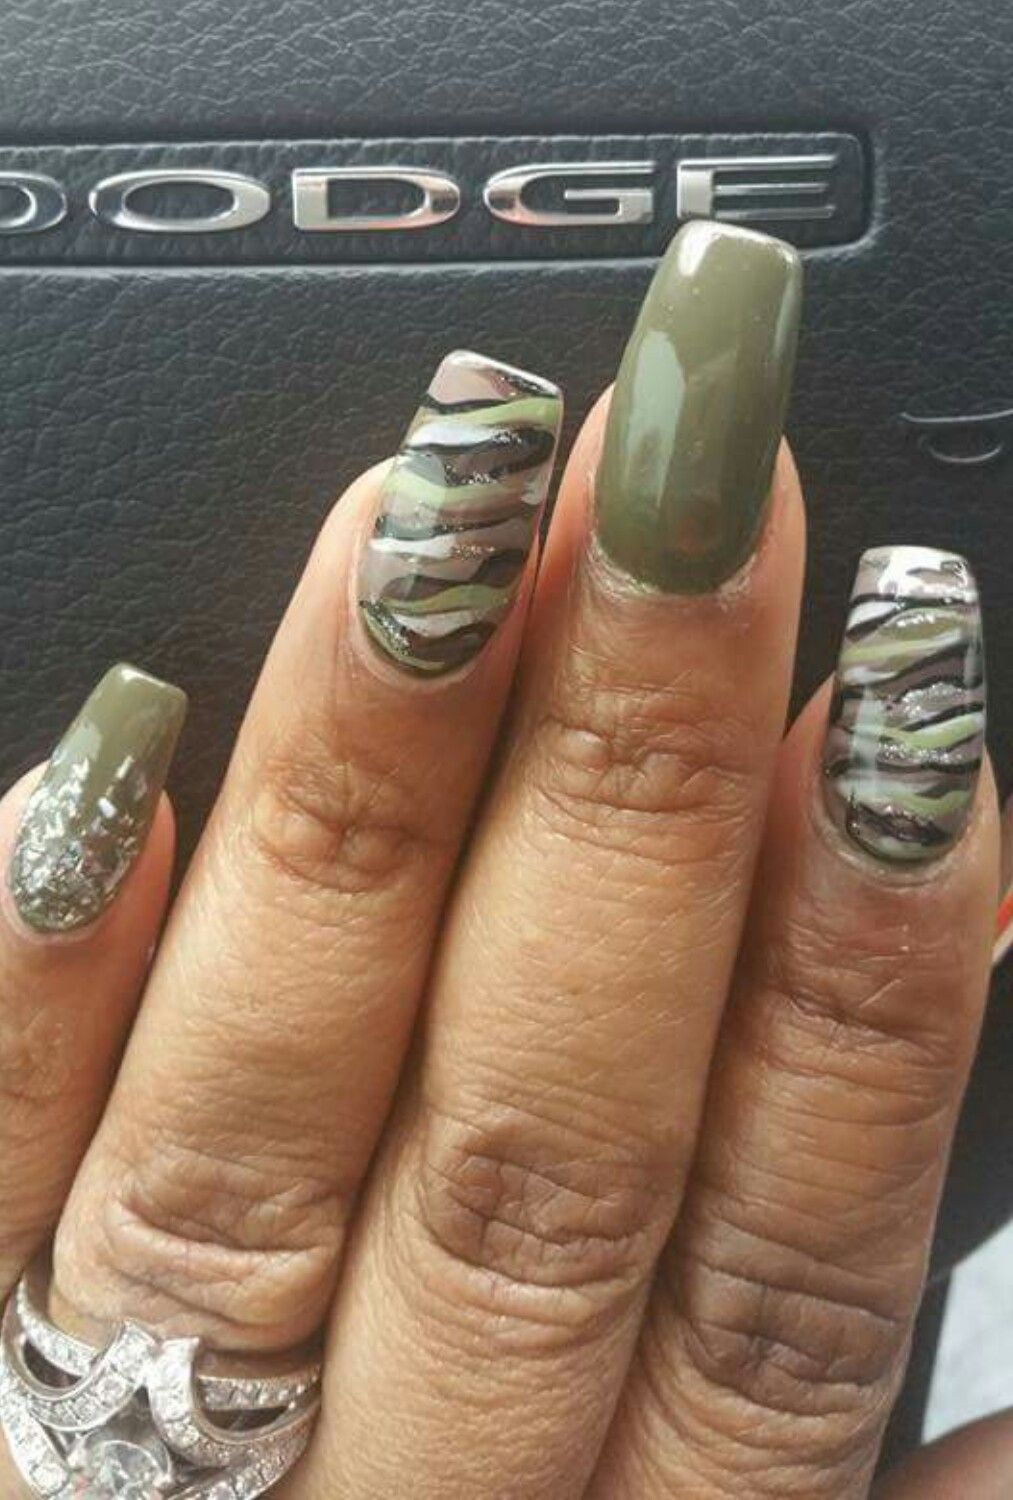 Camouflage nail design - Camouflage Nail Design Nails In 2018 Pinterest Nails, Camo